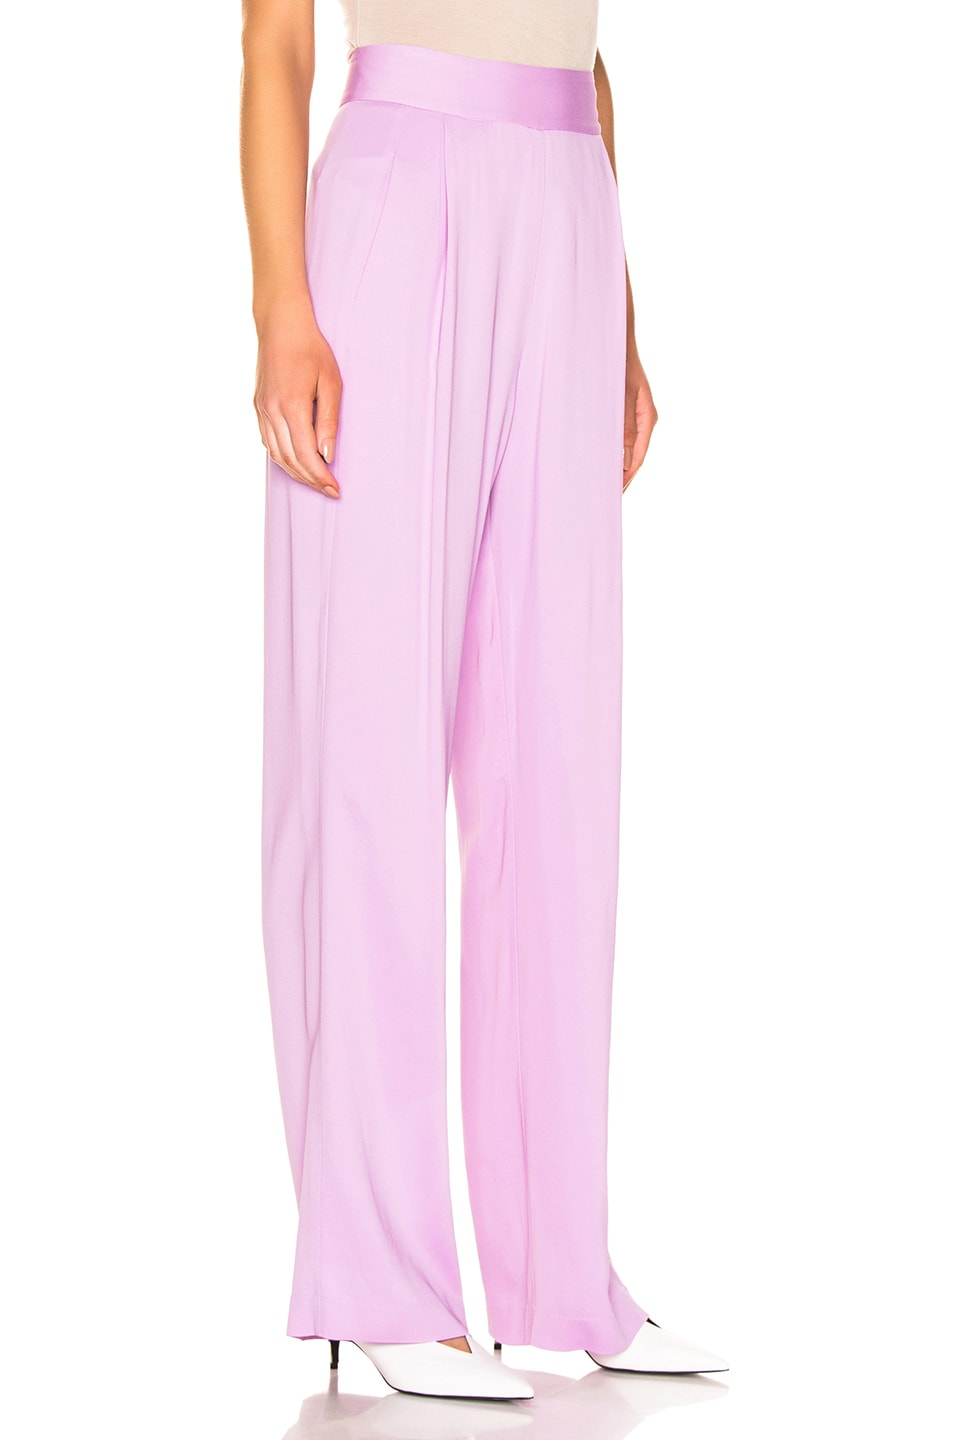 Image 2 of Michelle Mason Wise Leg Trouser in Lilac